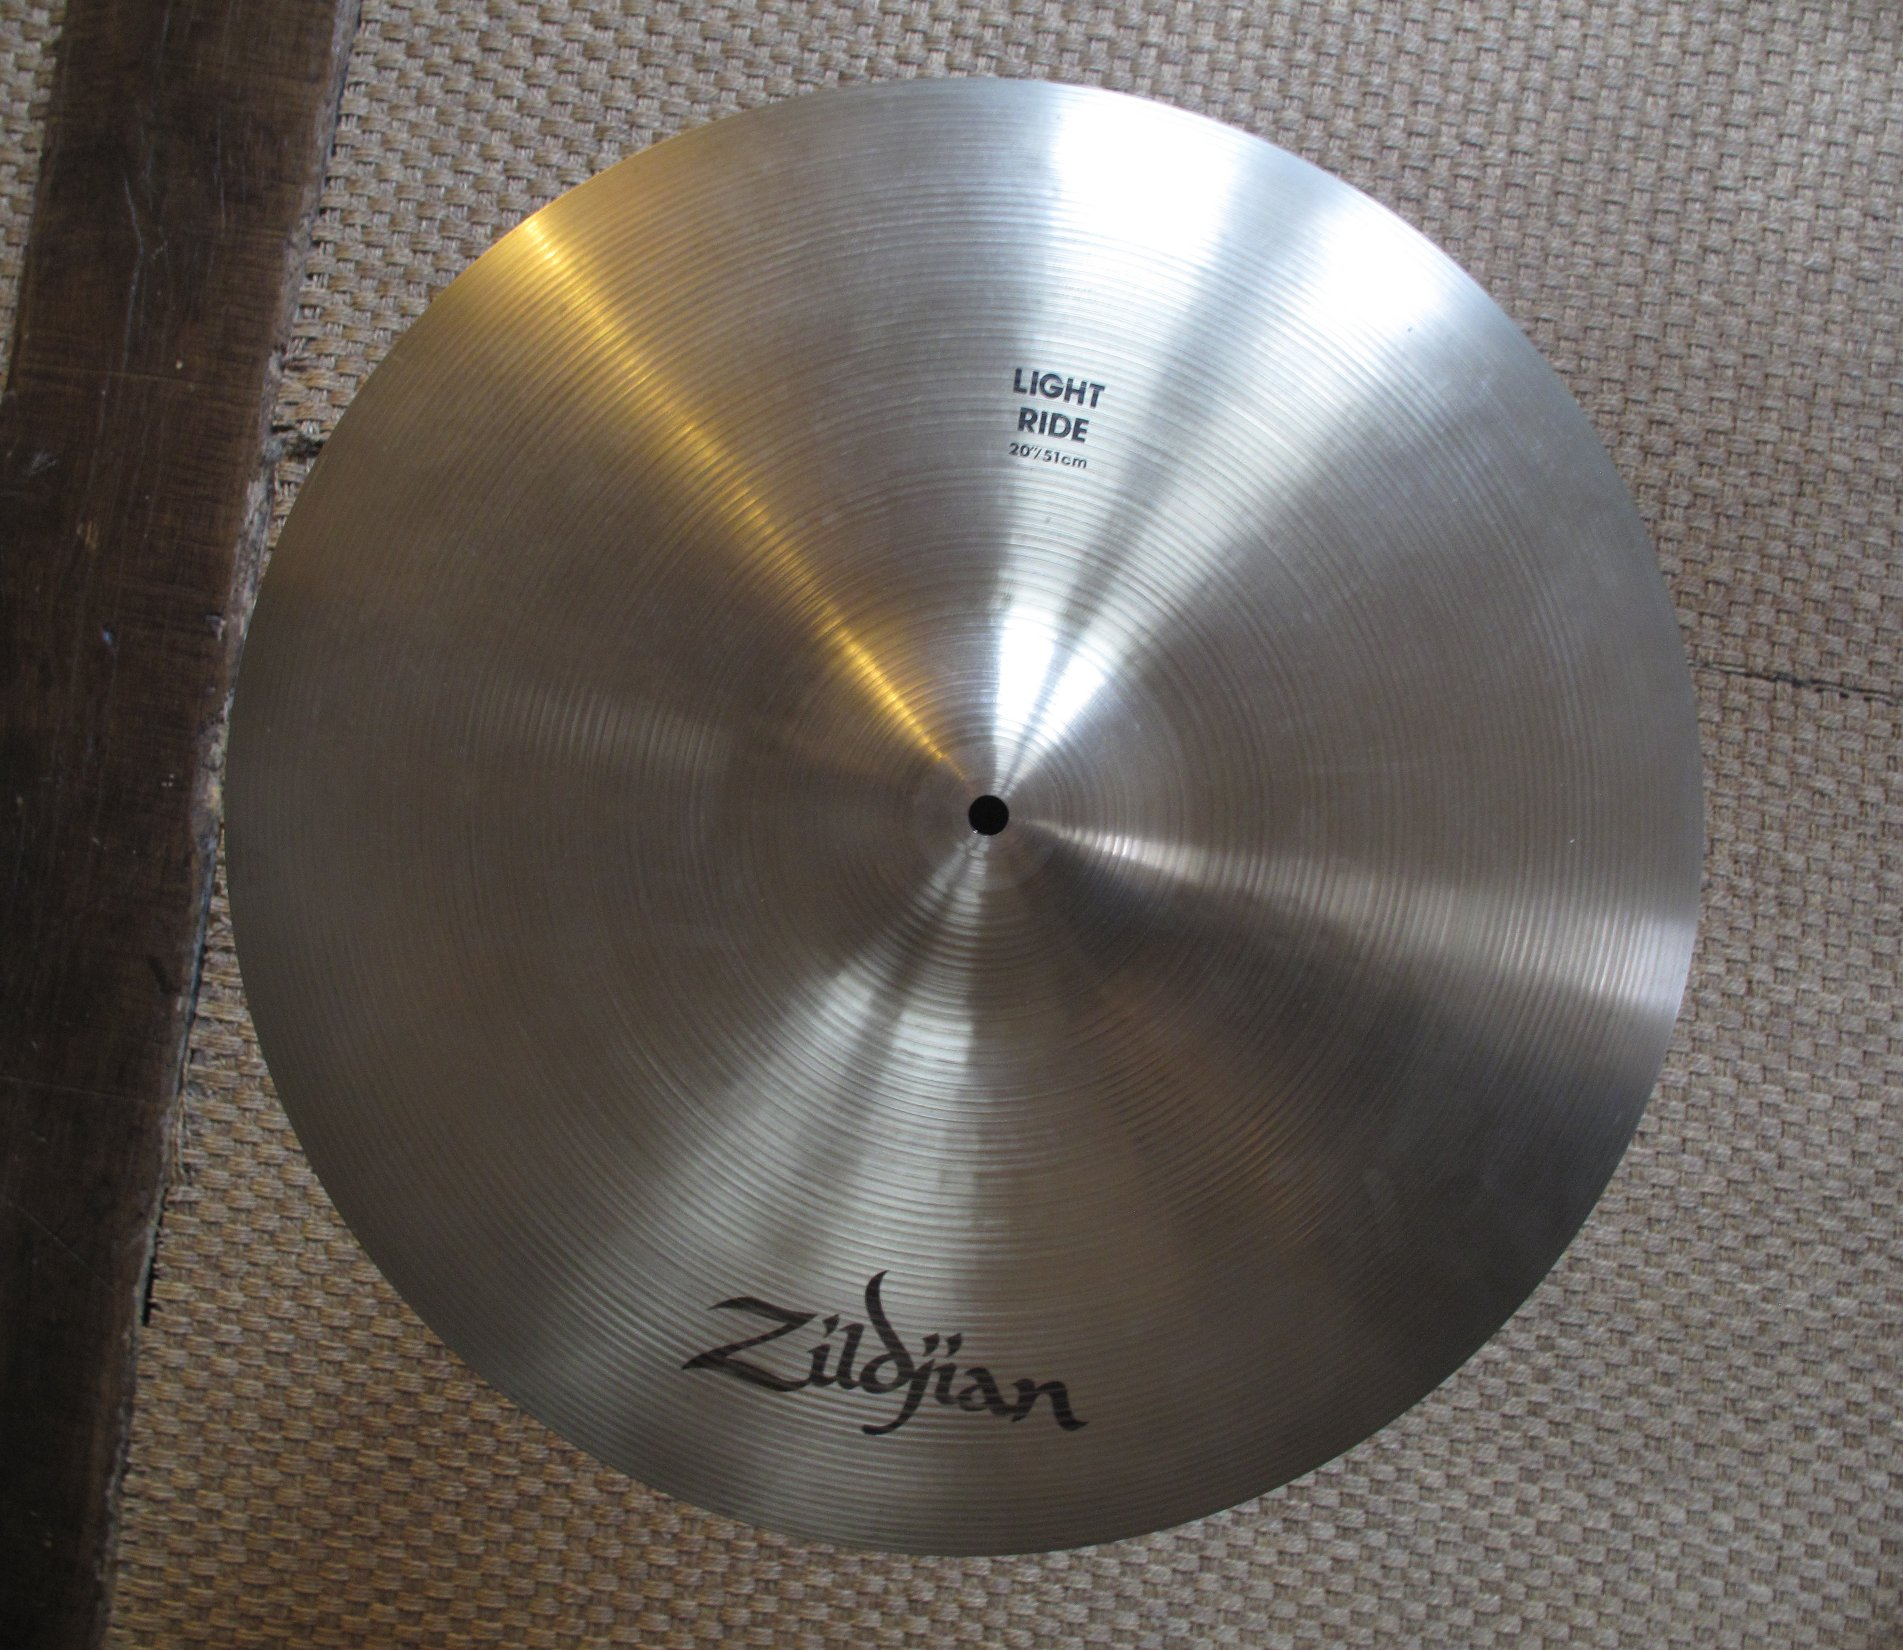 dc1baeede7ae Pictures and images Zildjian Avedis Light Ride 20